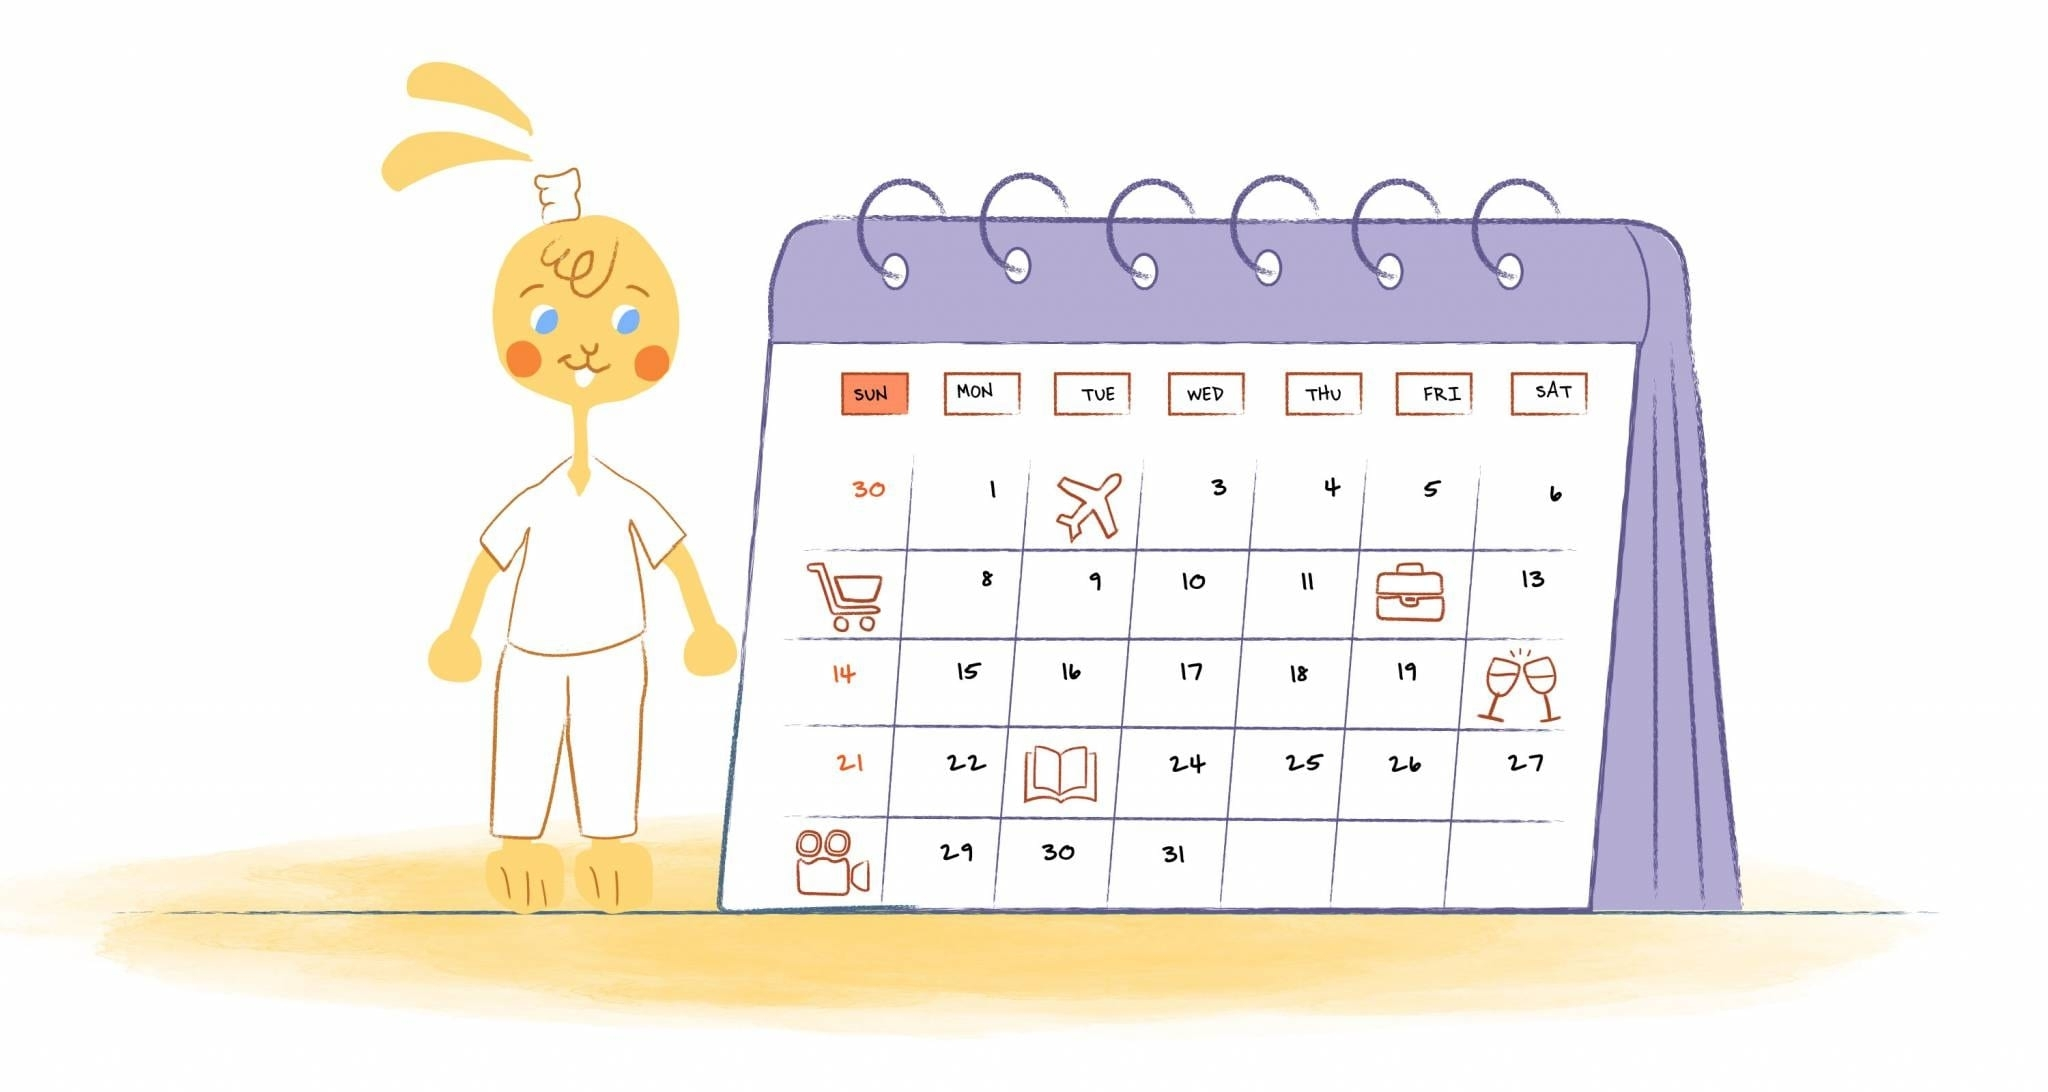 25 Google Calendar Hacks To Maximize Productivity - Calendar